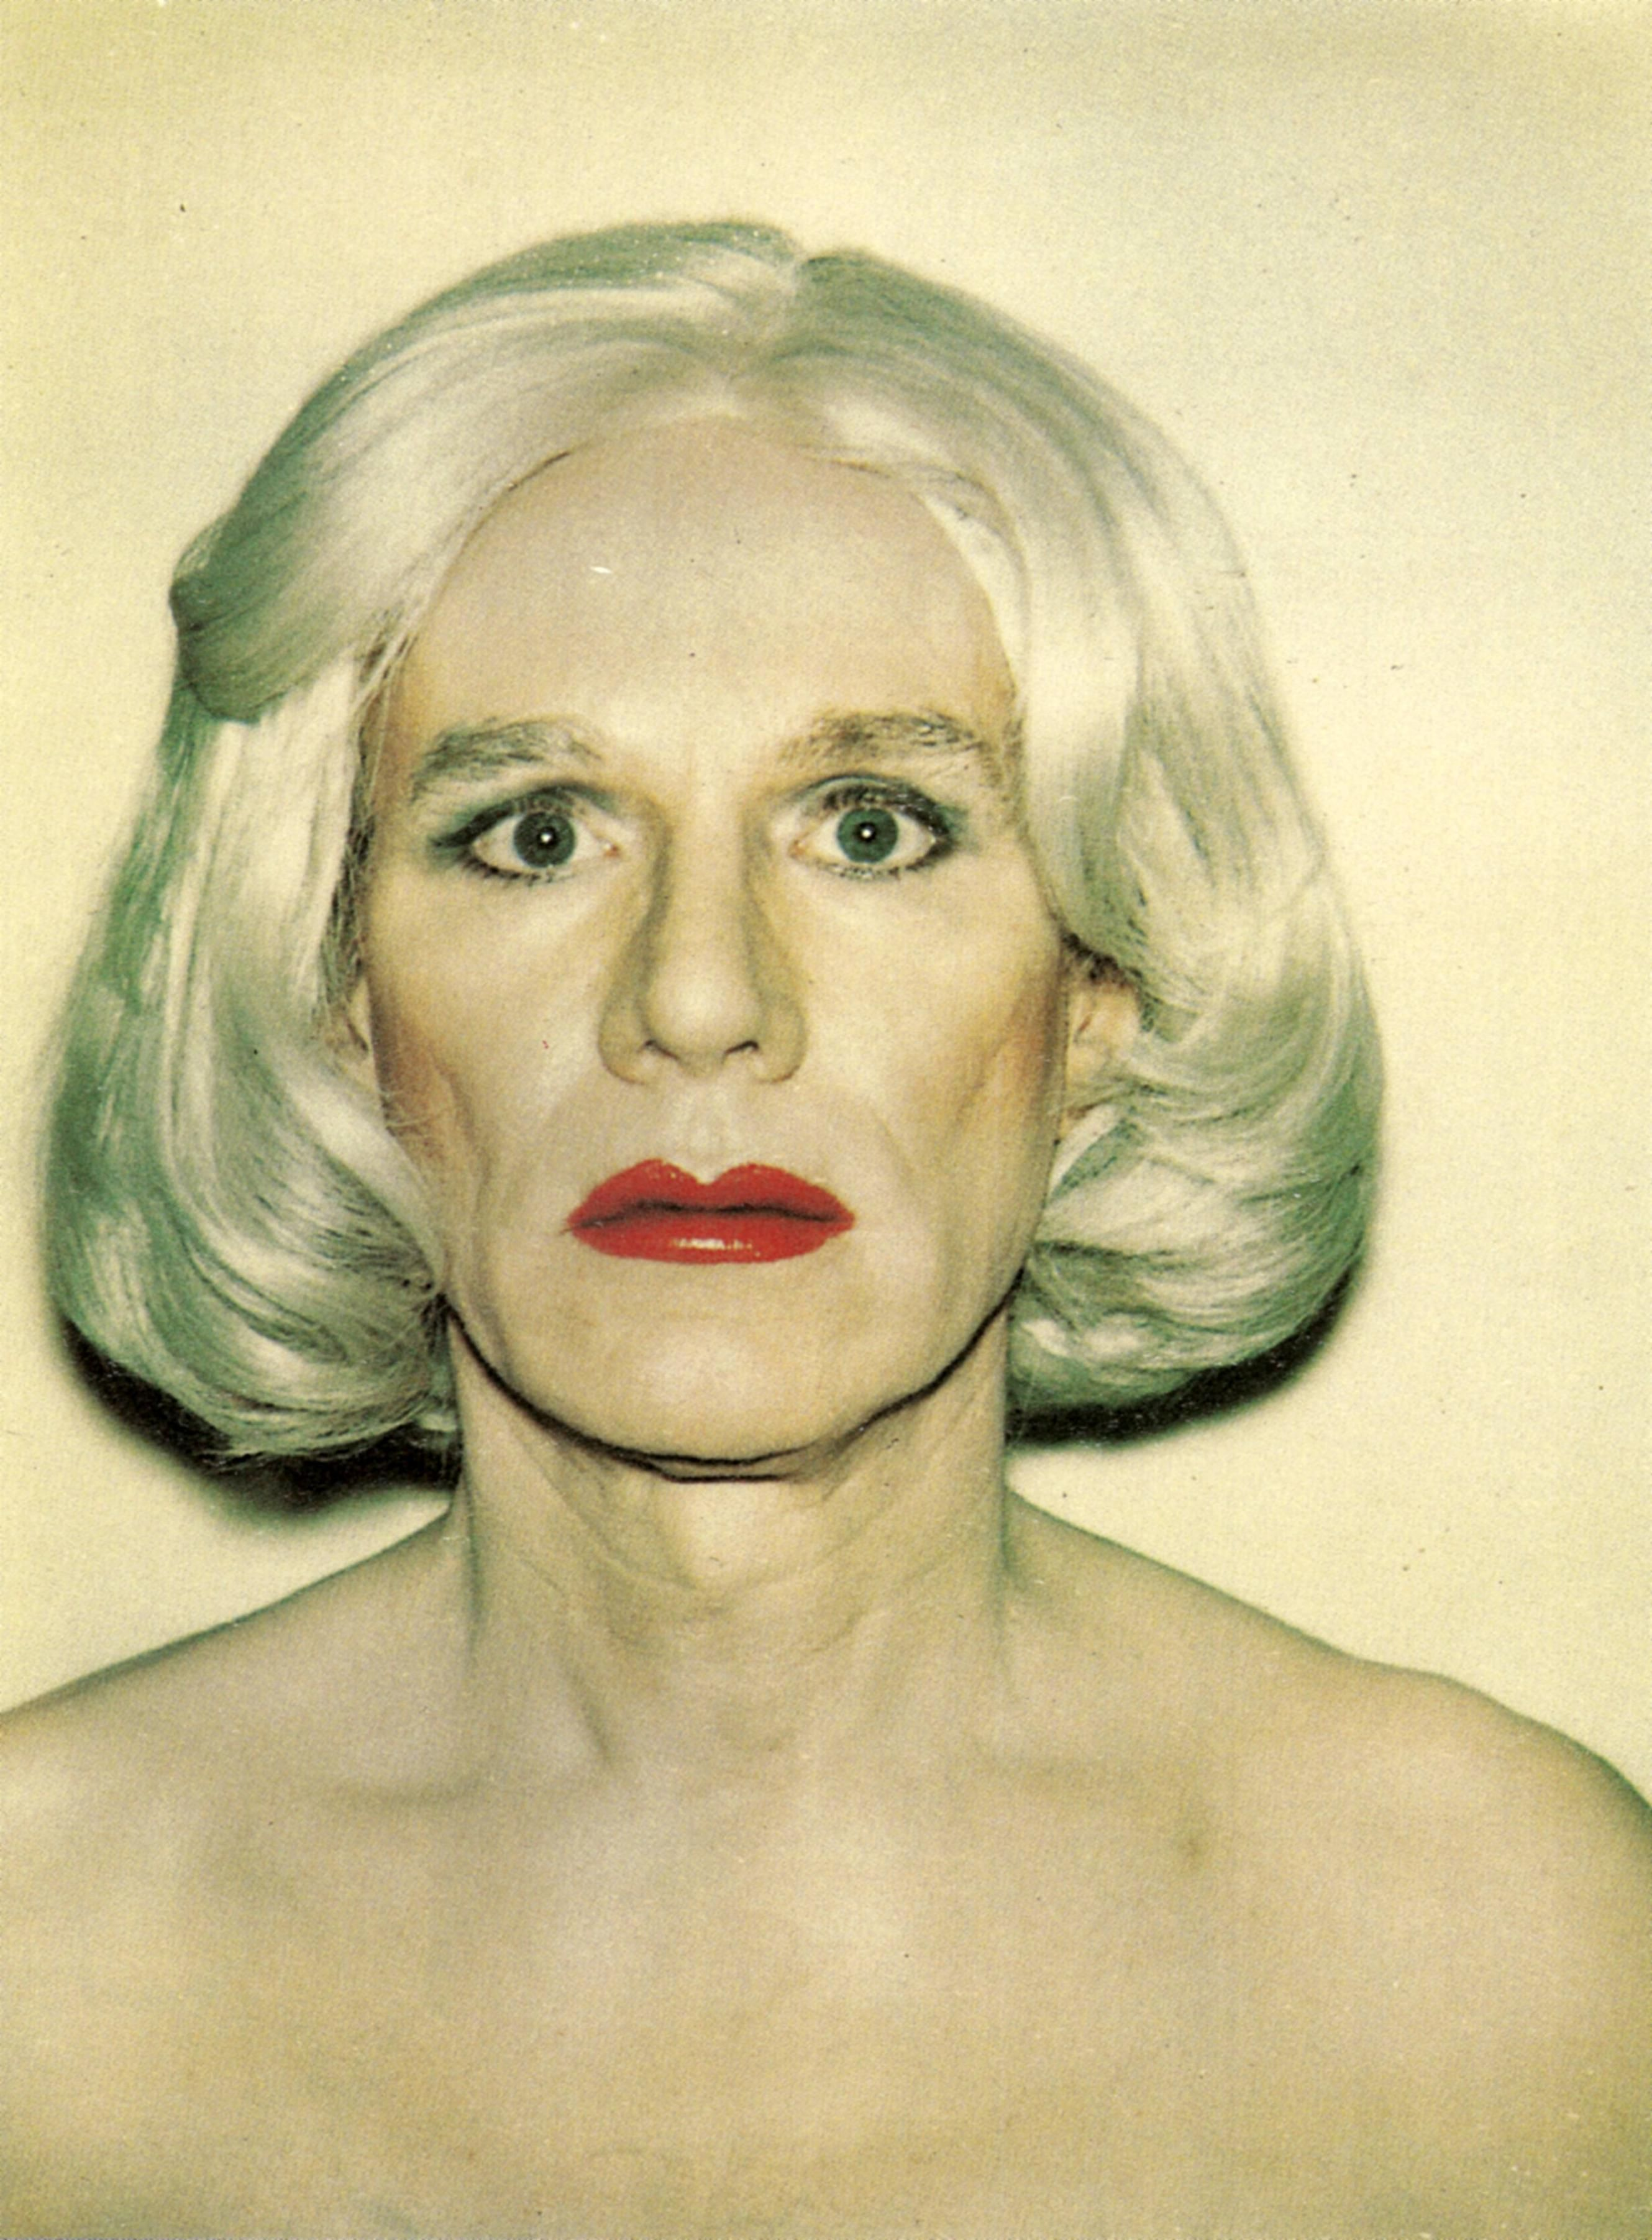 Andy Warhol August 6 1928 February 22 1987